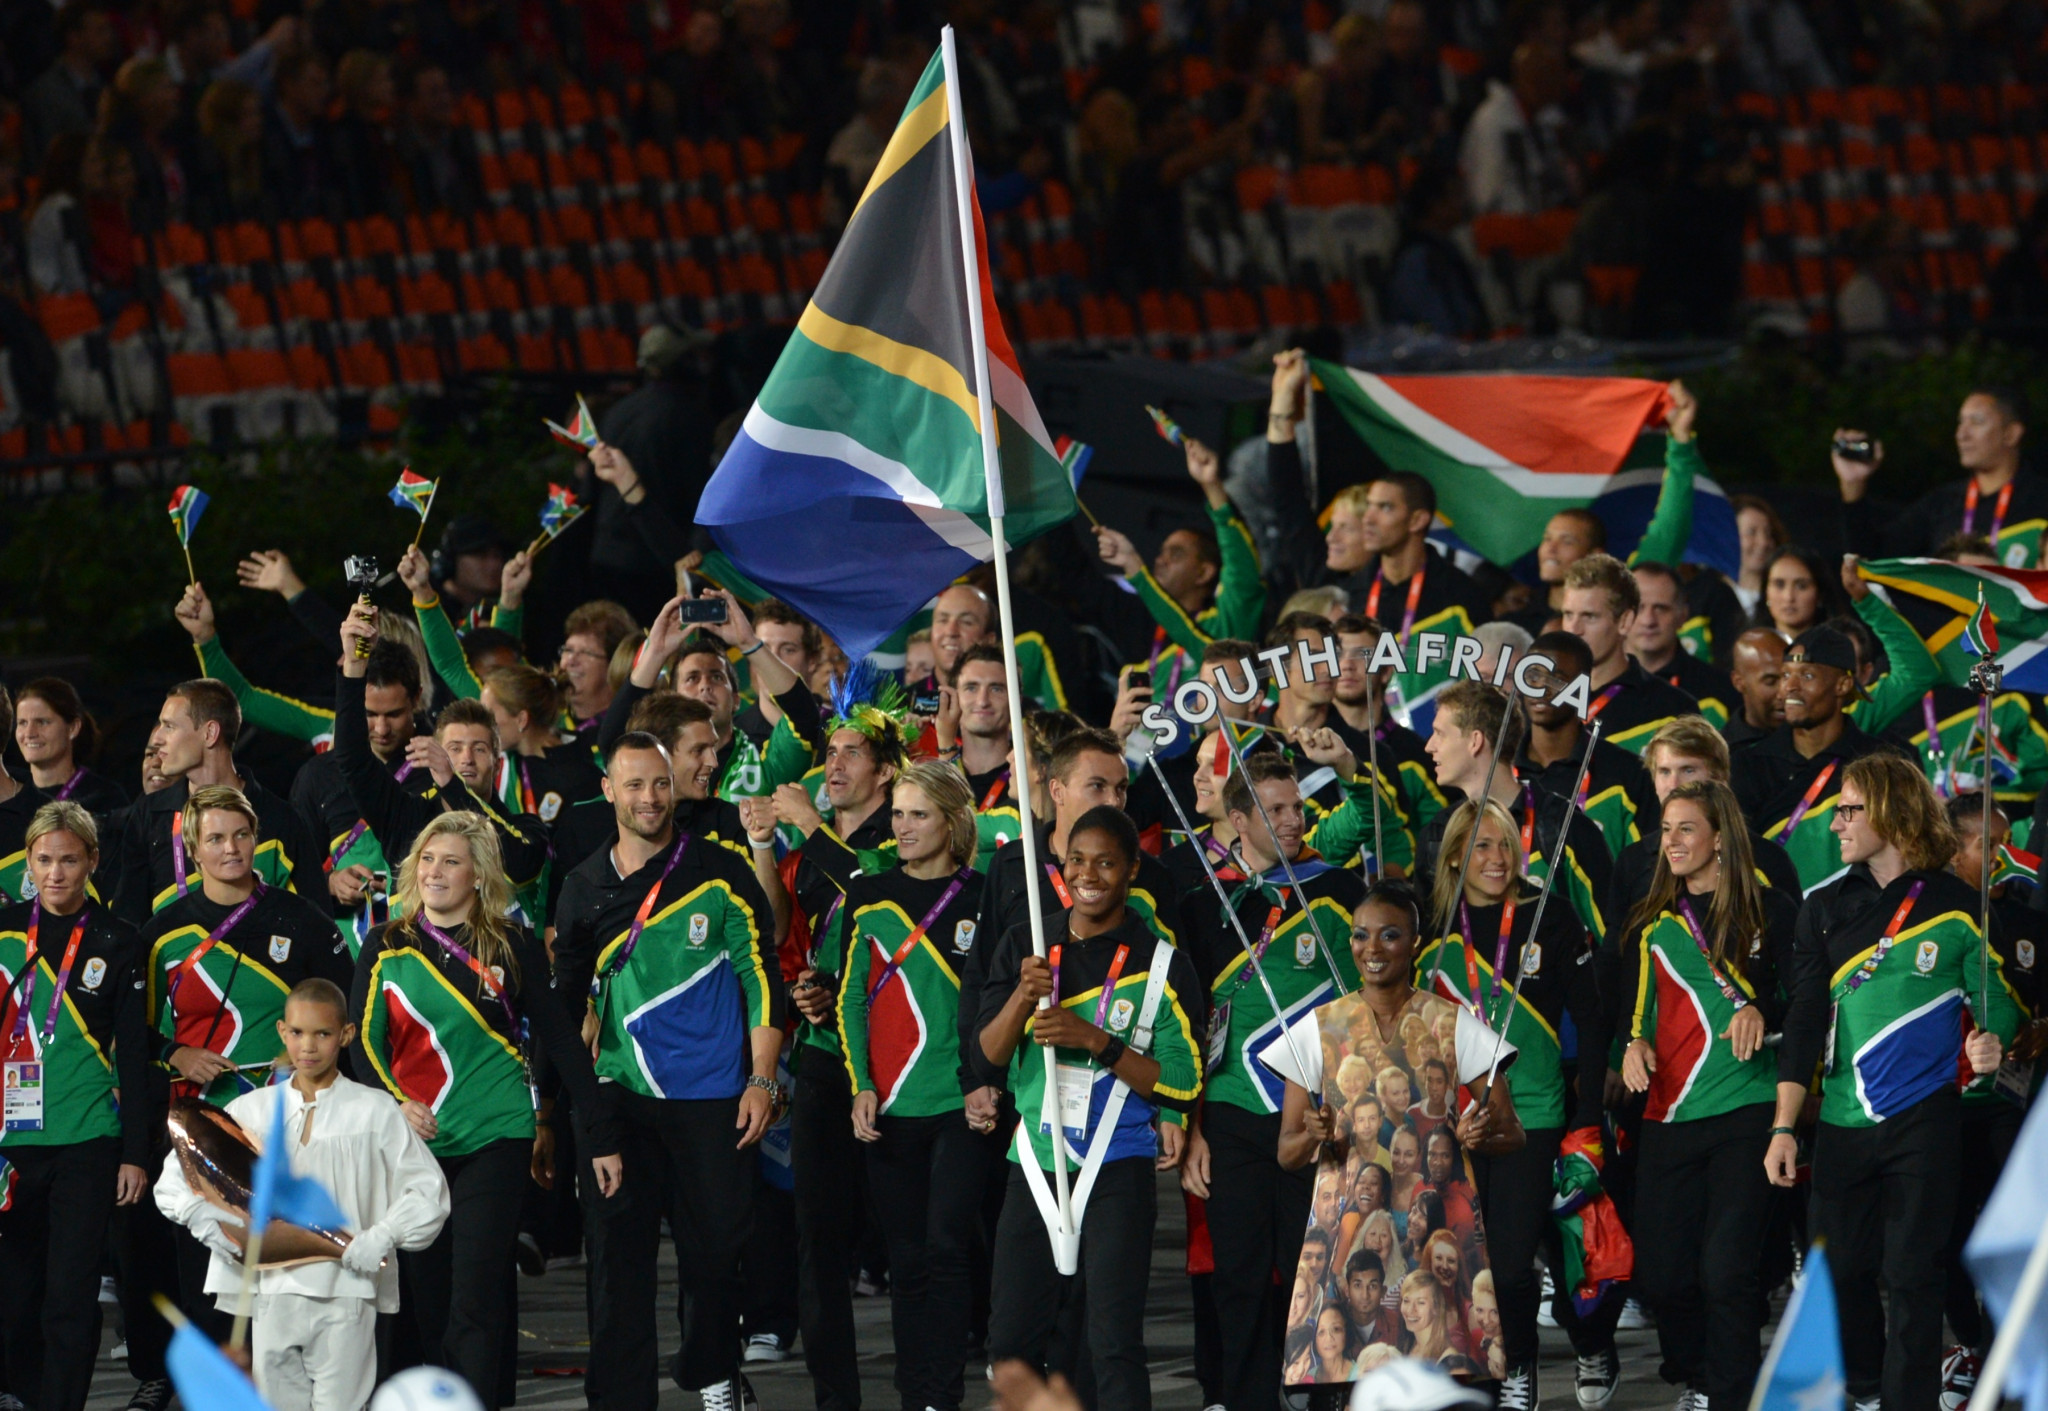 Caster Semenya carried South Africa's flag at the Opening Ceremony of the 2012 Olympic Games in London ©Getty Images